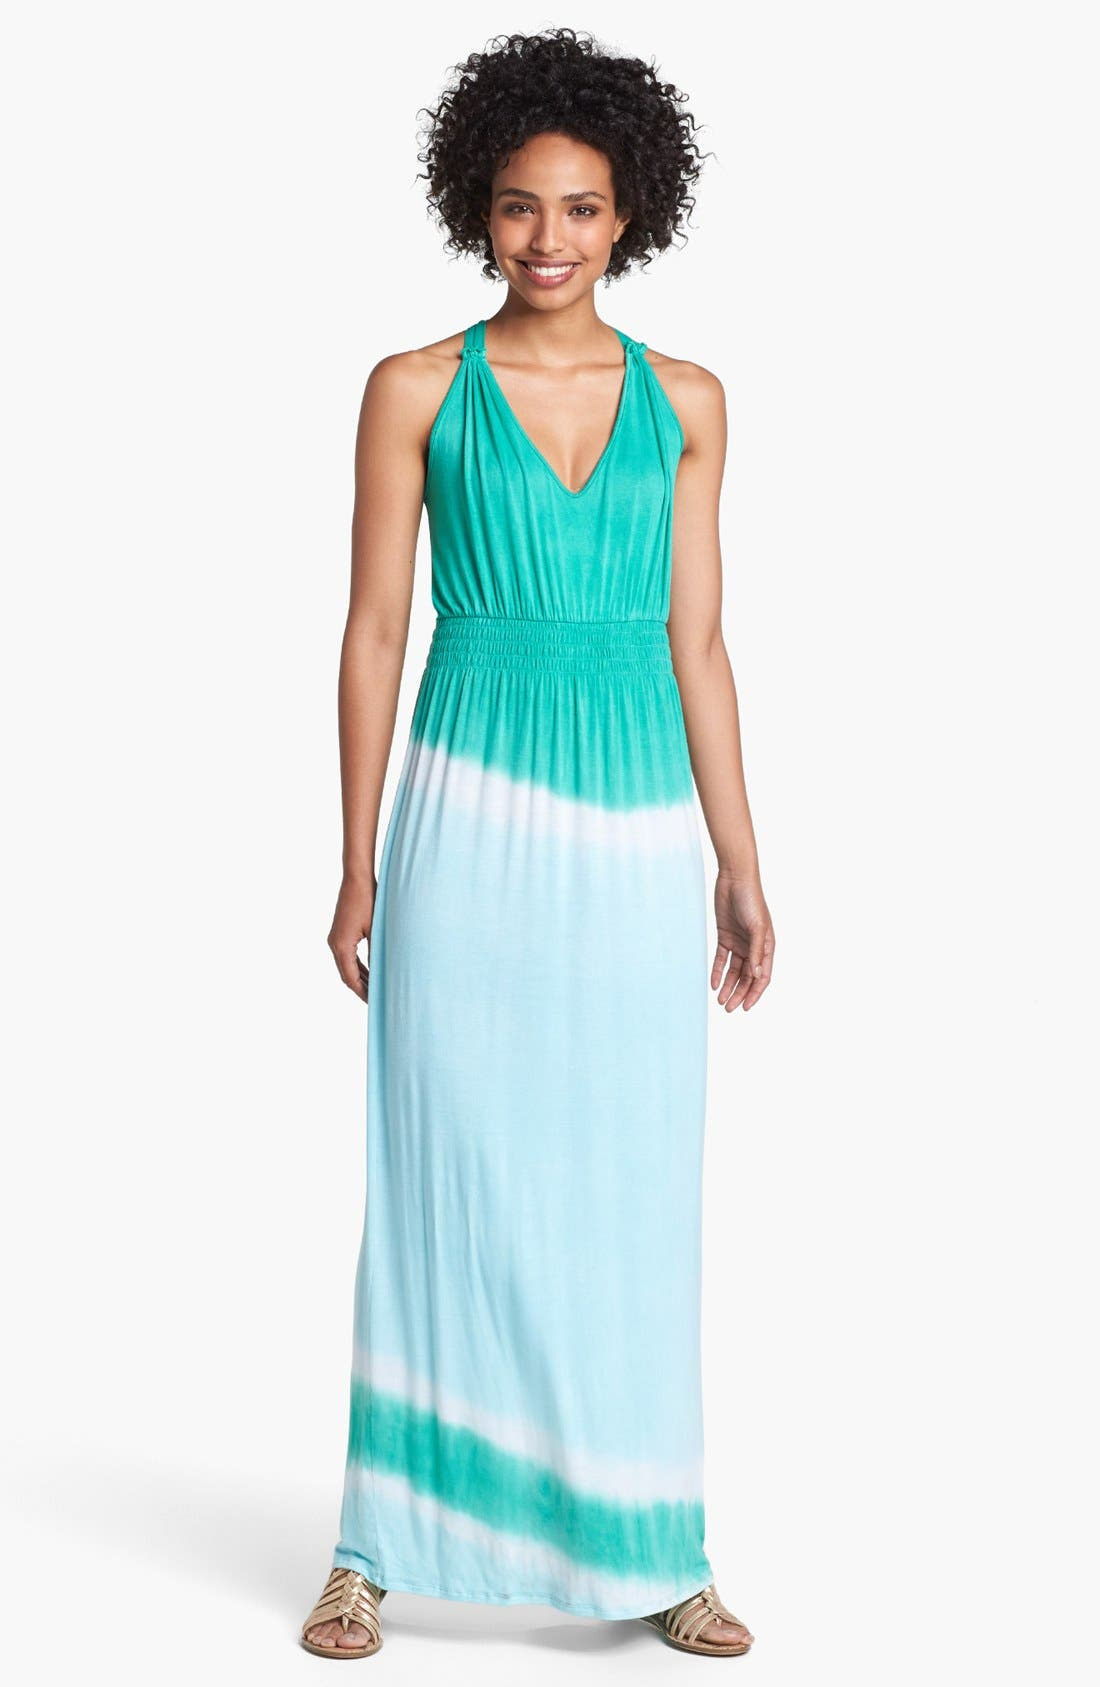 Alternate Image 1 Selected - Loveappella Colorblock Maxi Dress (Petite)